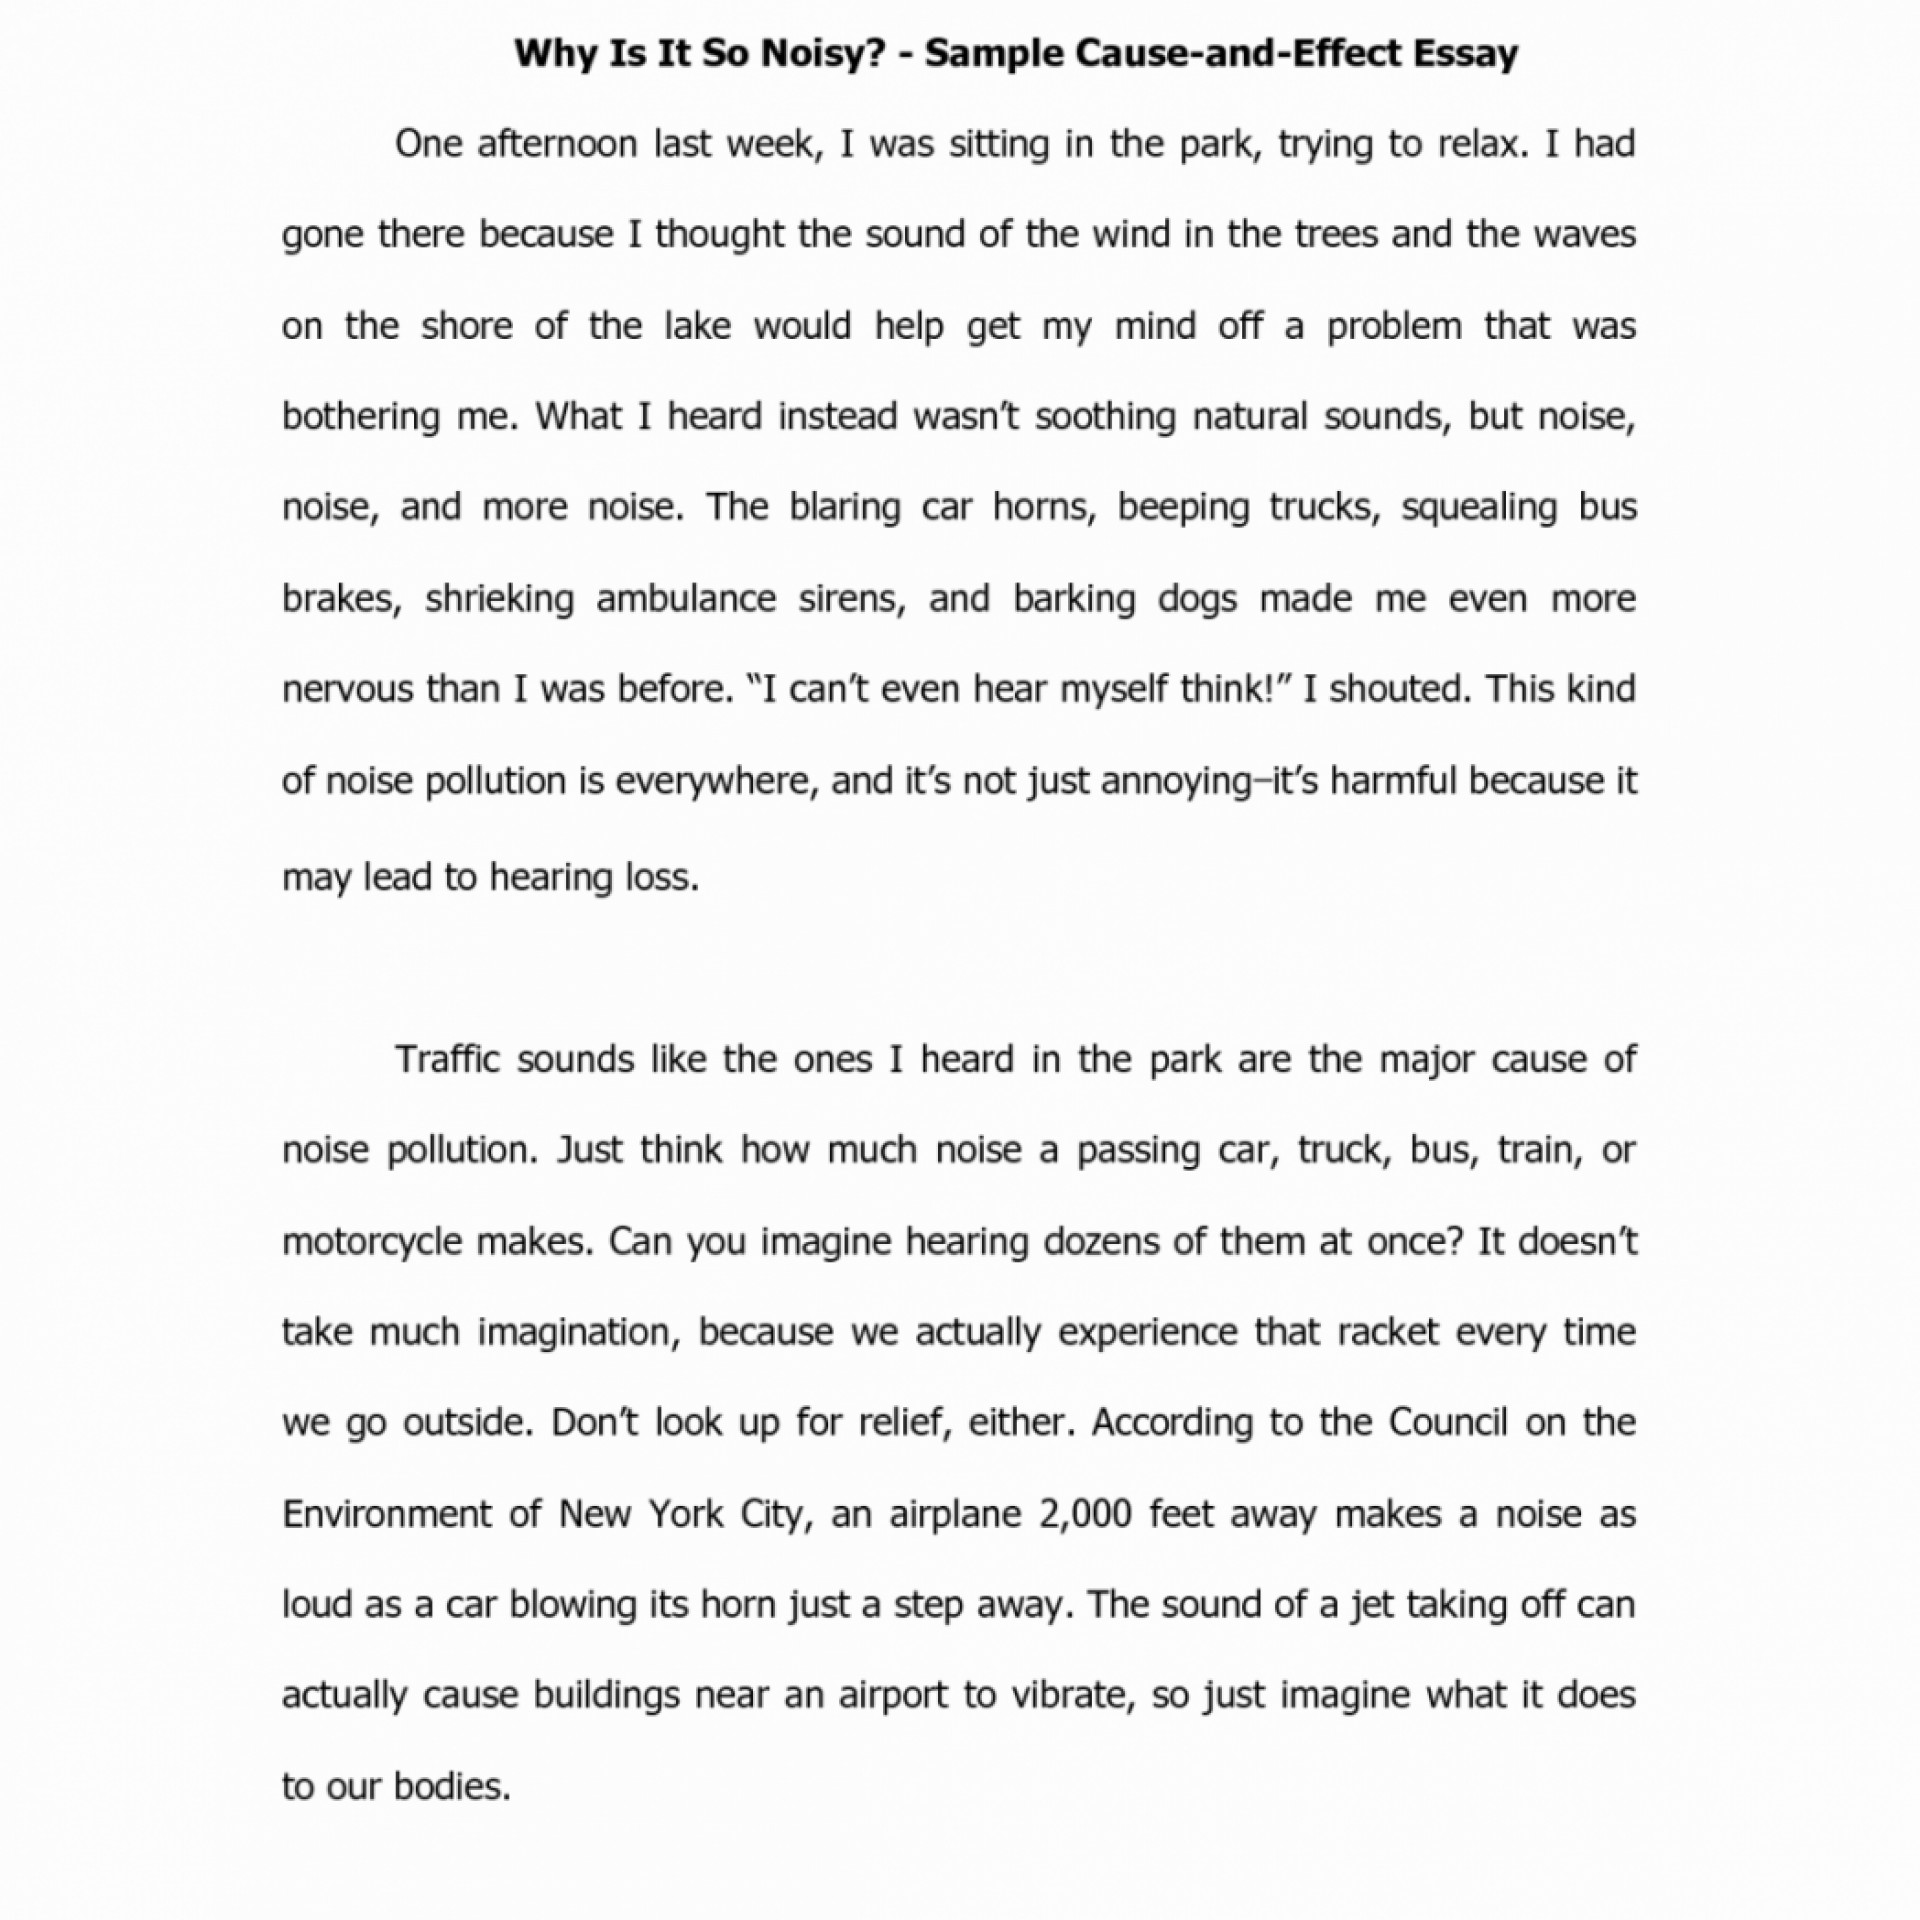 027 Cause And Effect Essays Format Best Of For Or Good Cover Bystander Domino Analysis Ielts Free 6th Grade College Pdf Middle School 1048x1048 Amazing Essay Examples Writing 1920